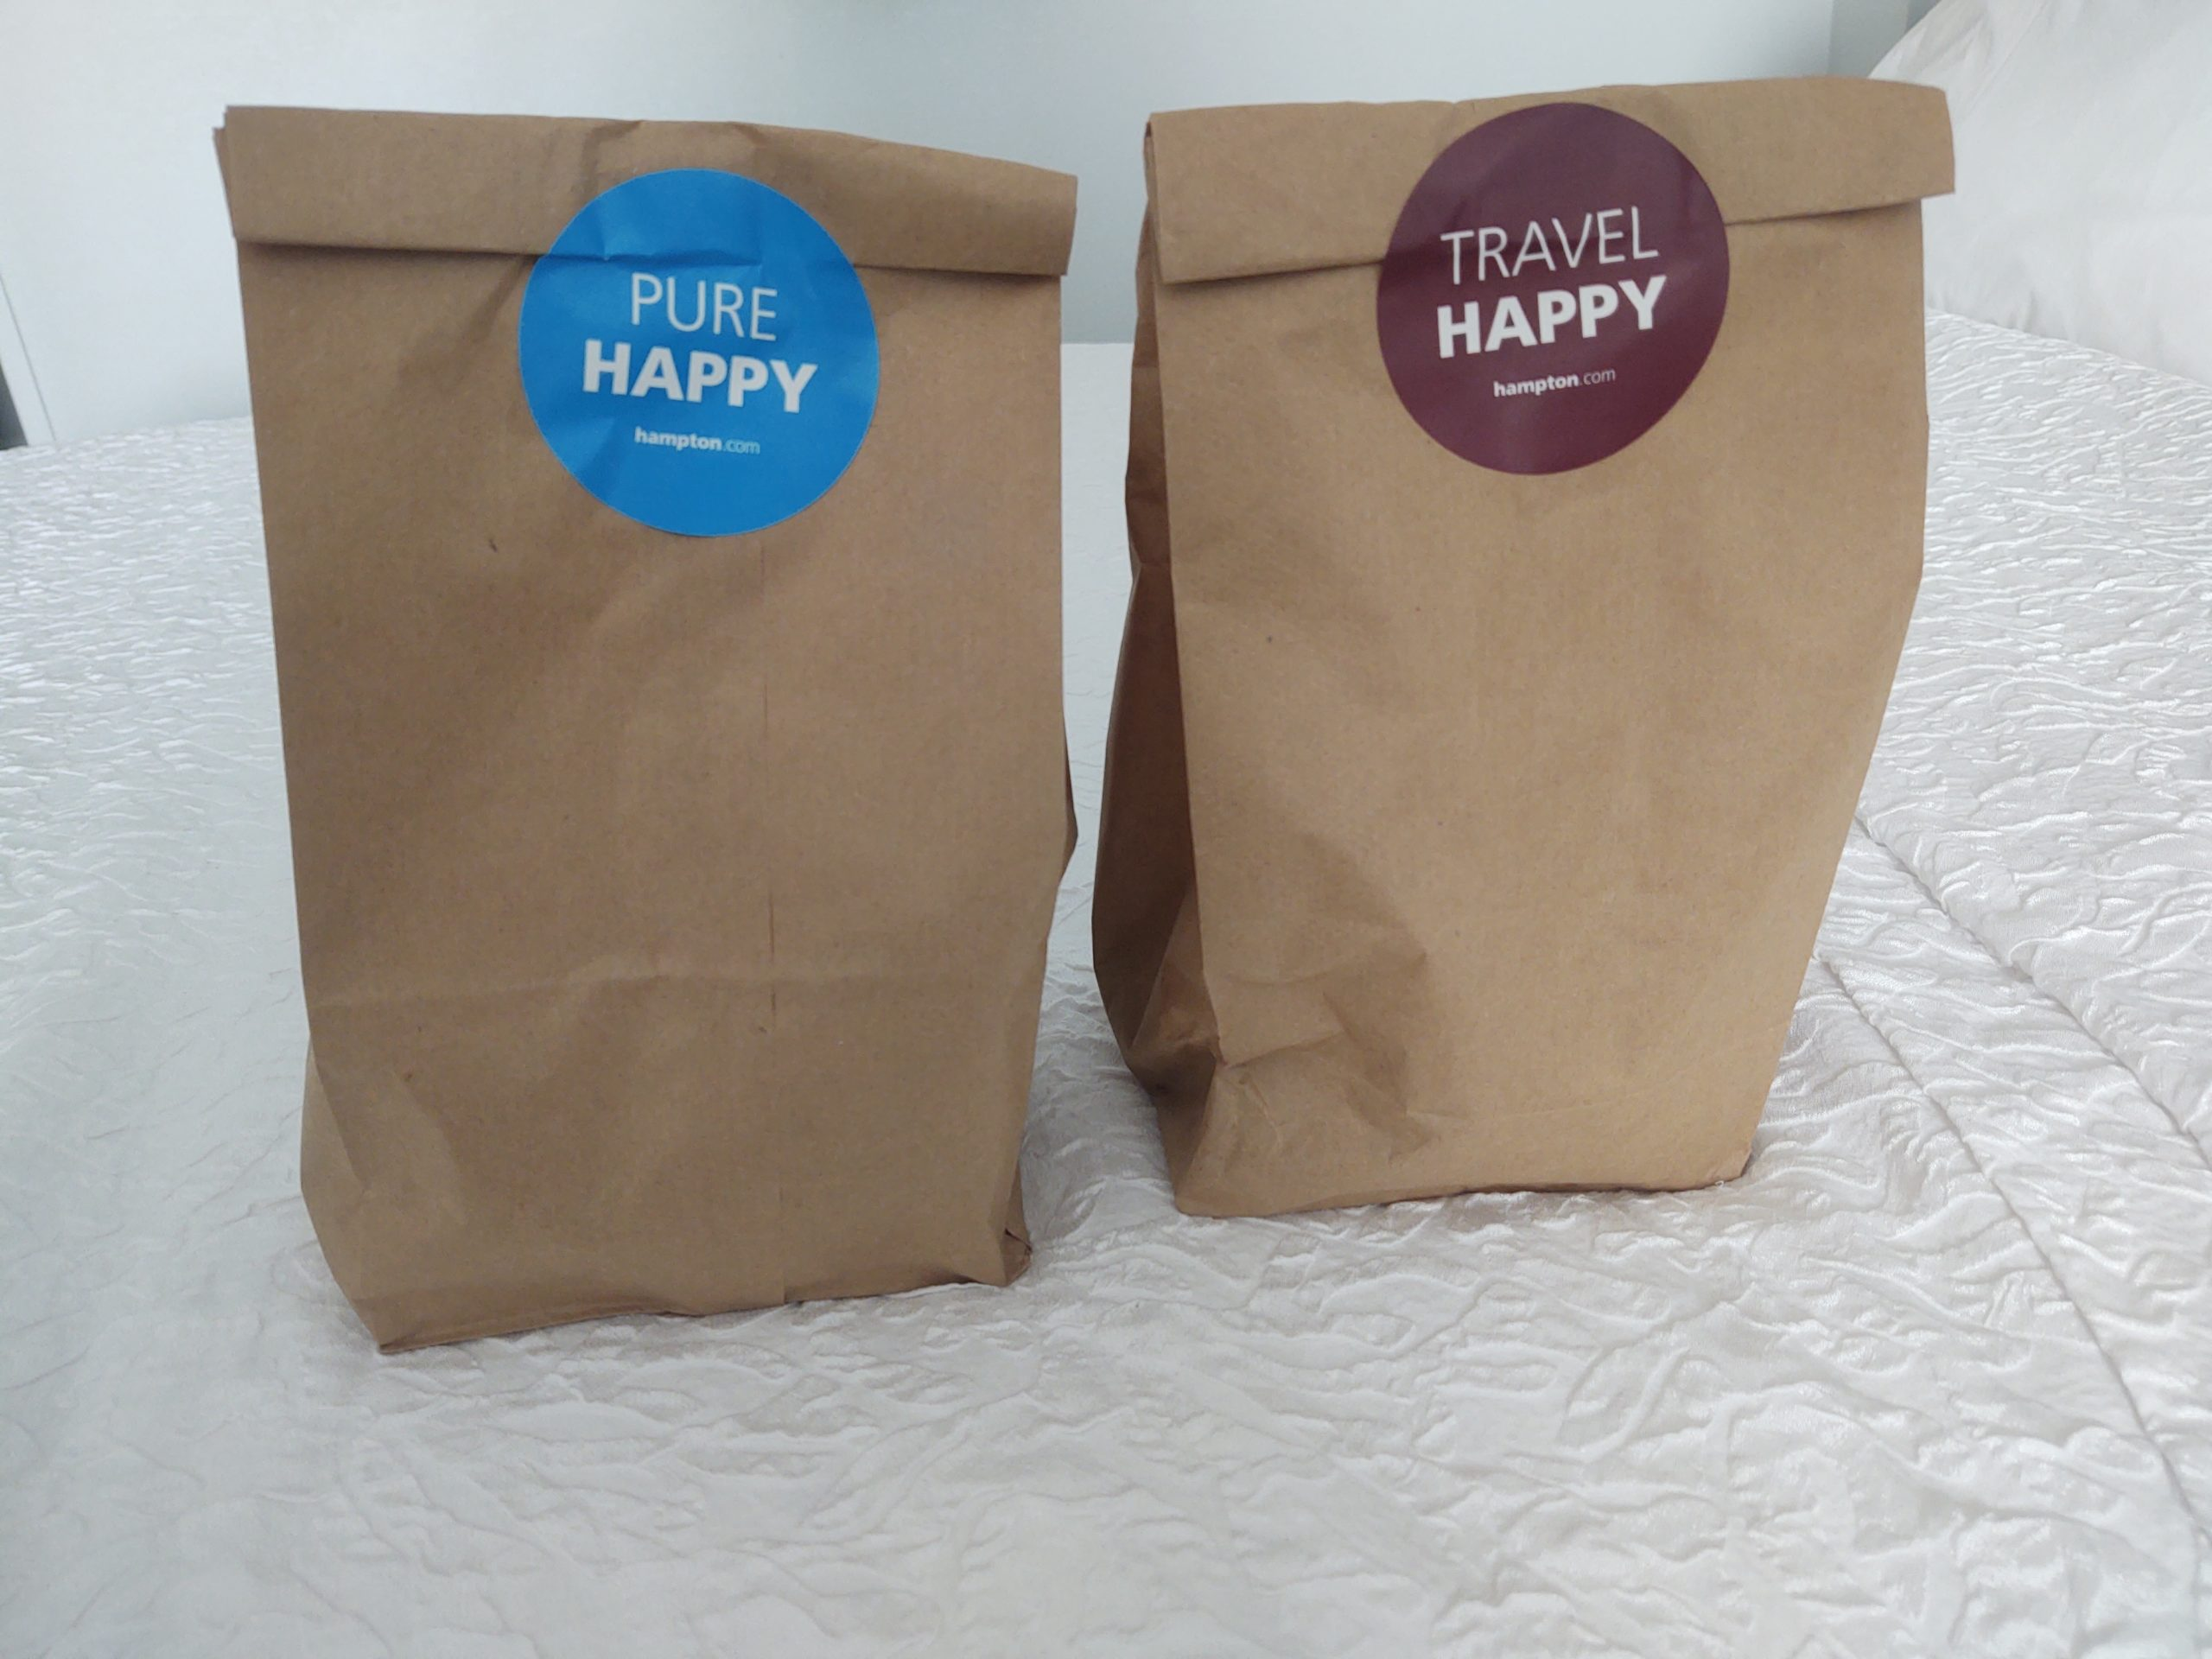 Bags of Happy